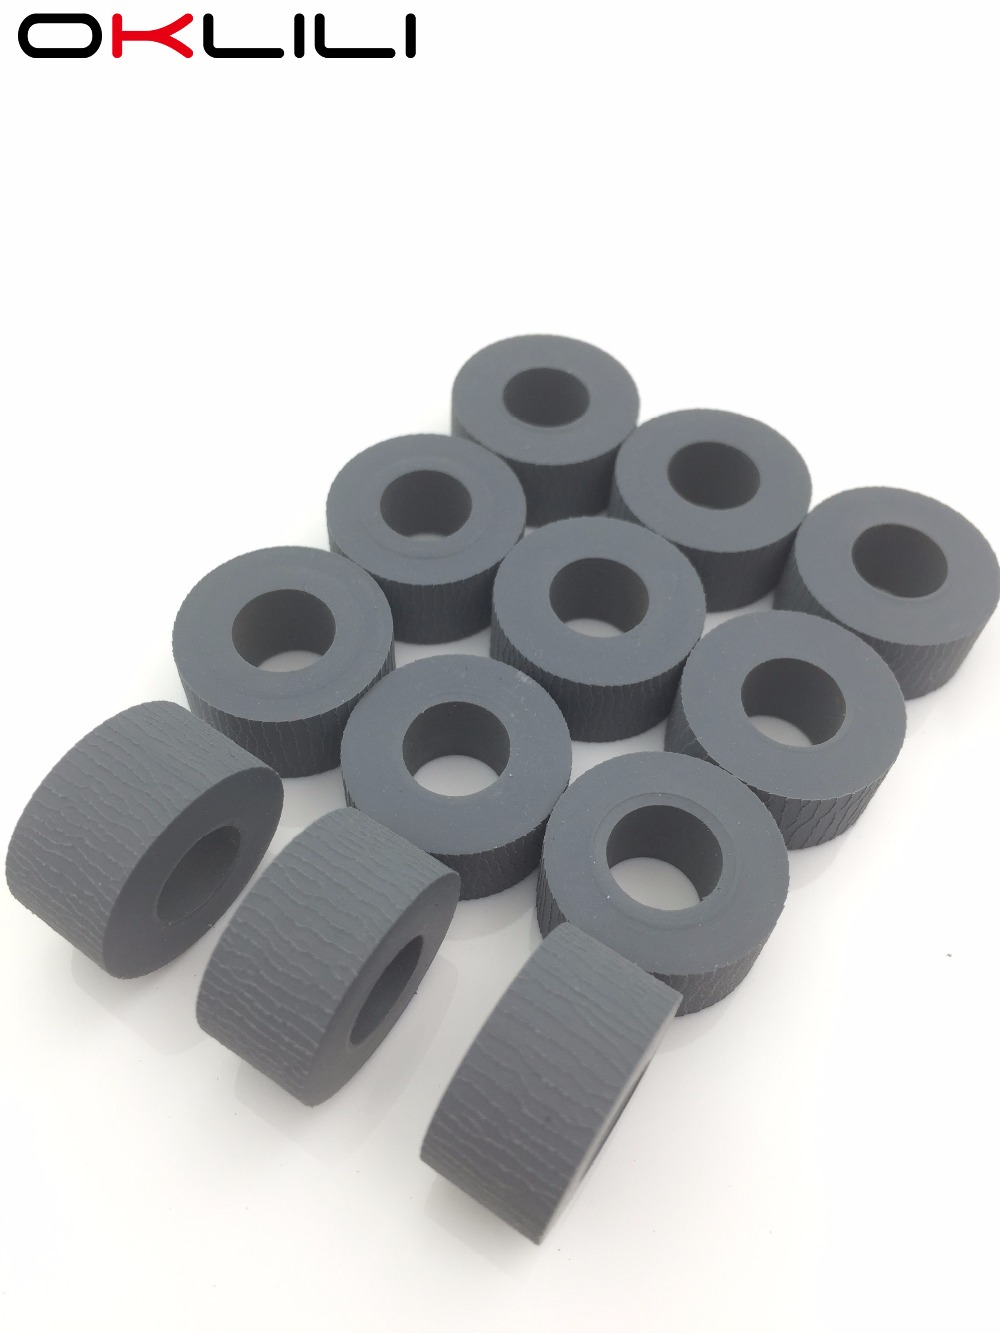 Paper Feed Pickup Roller tire for <font><b>Xerox</b></font> 133 C123 C128 1632 2240 3535 5500 <font><b>5550</b></font> 7700 7760 5225 5230 7228 7232 7235 7245 7328 7335 image